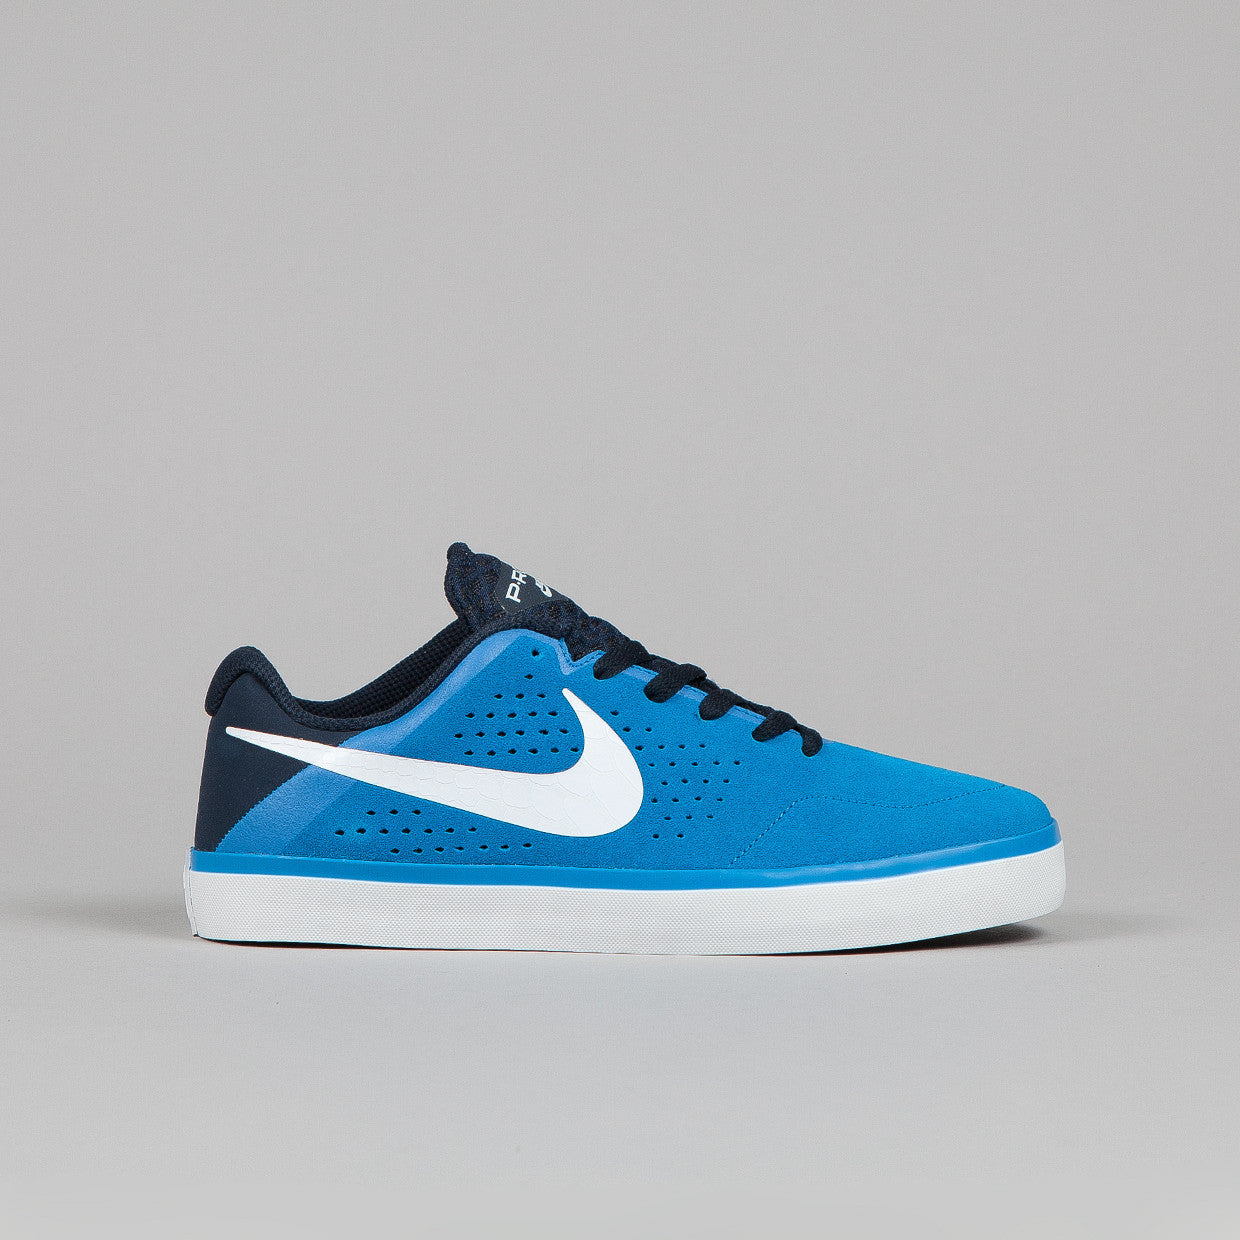 Nike Sb Paul Rodriguez CTD LR Photo Blue / White - Obsidian